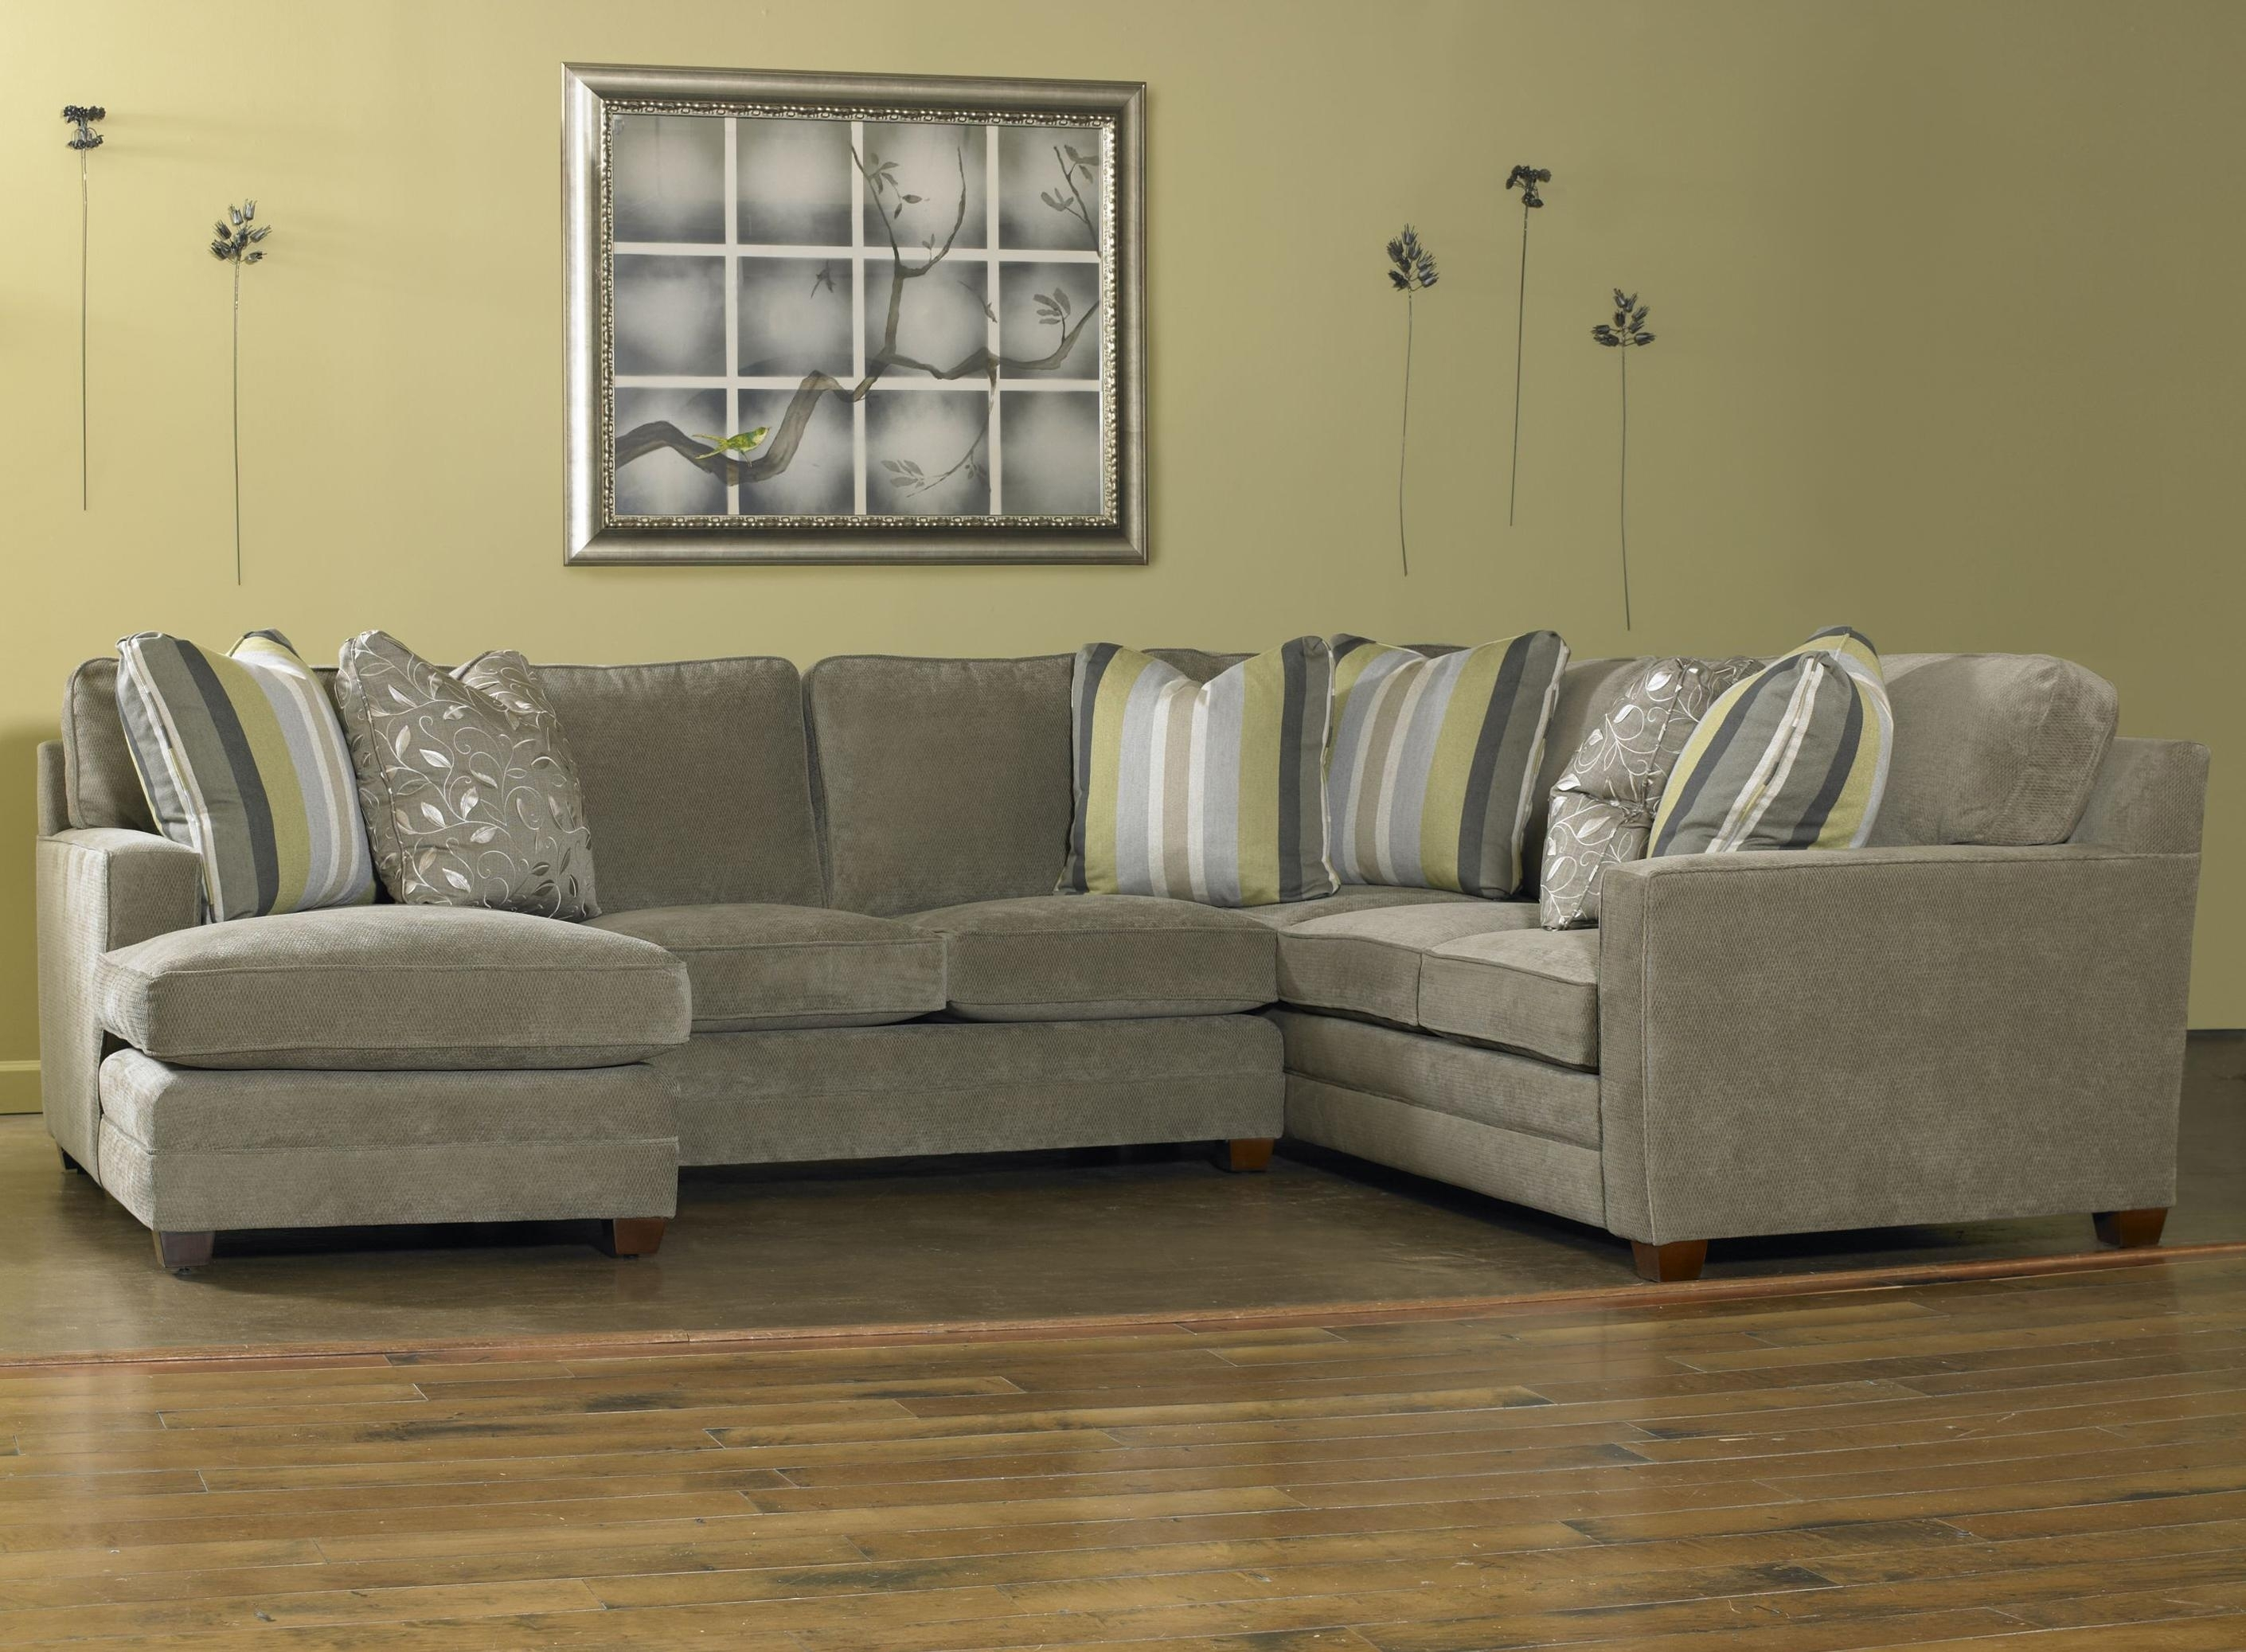 Sam's Club Leather Sectional Sofa • Leather Sofa Pertaining To Sectional Sofas At Sam's Club (View 5 of 10)